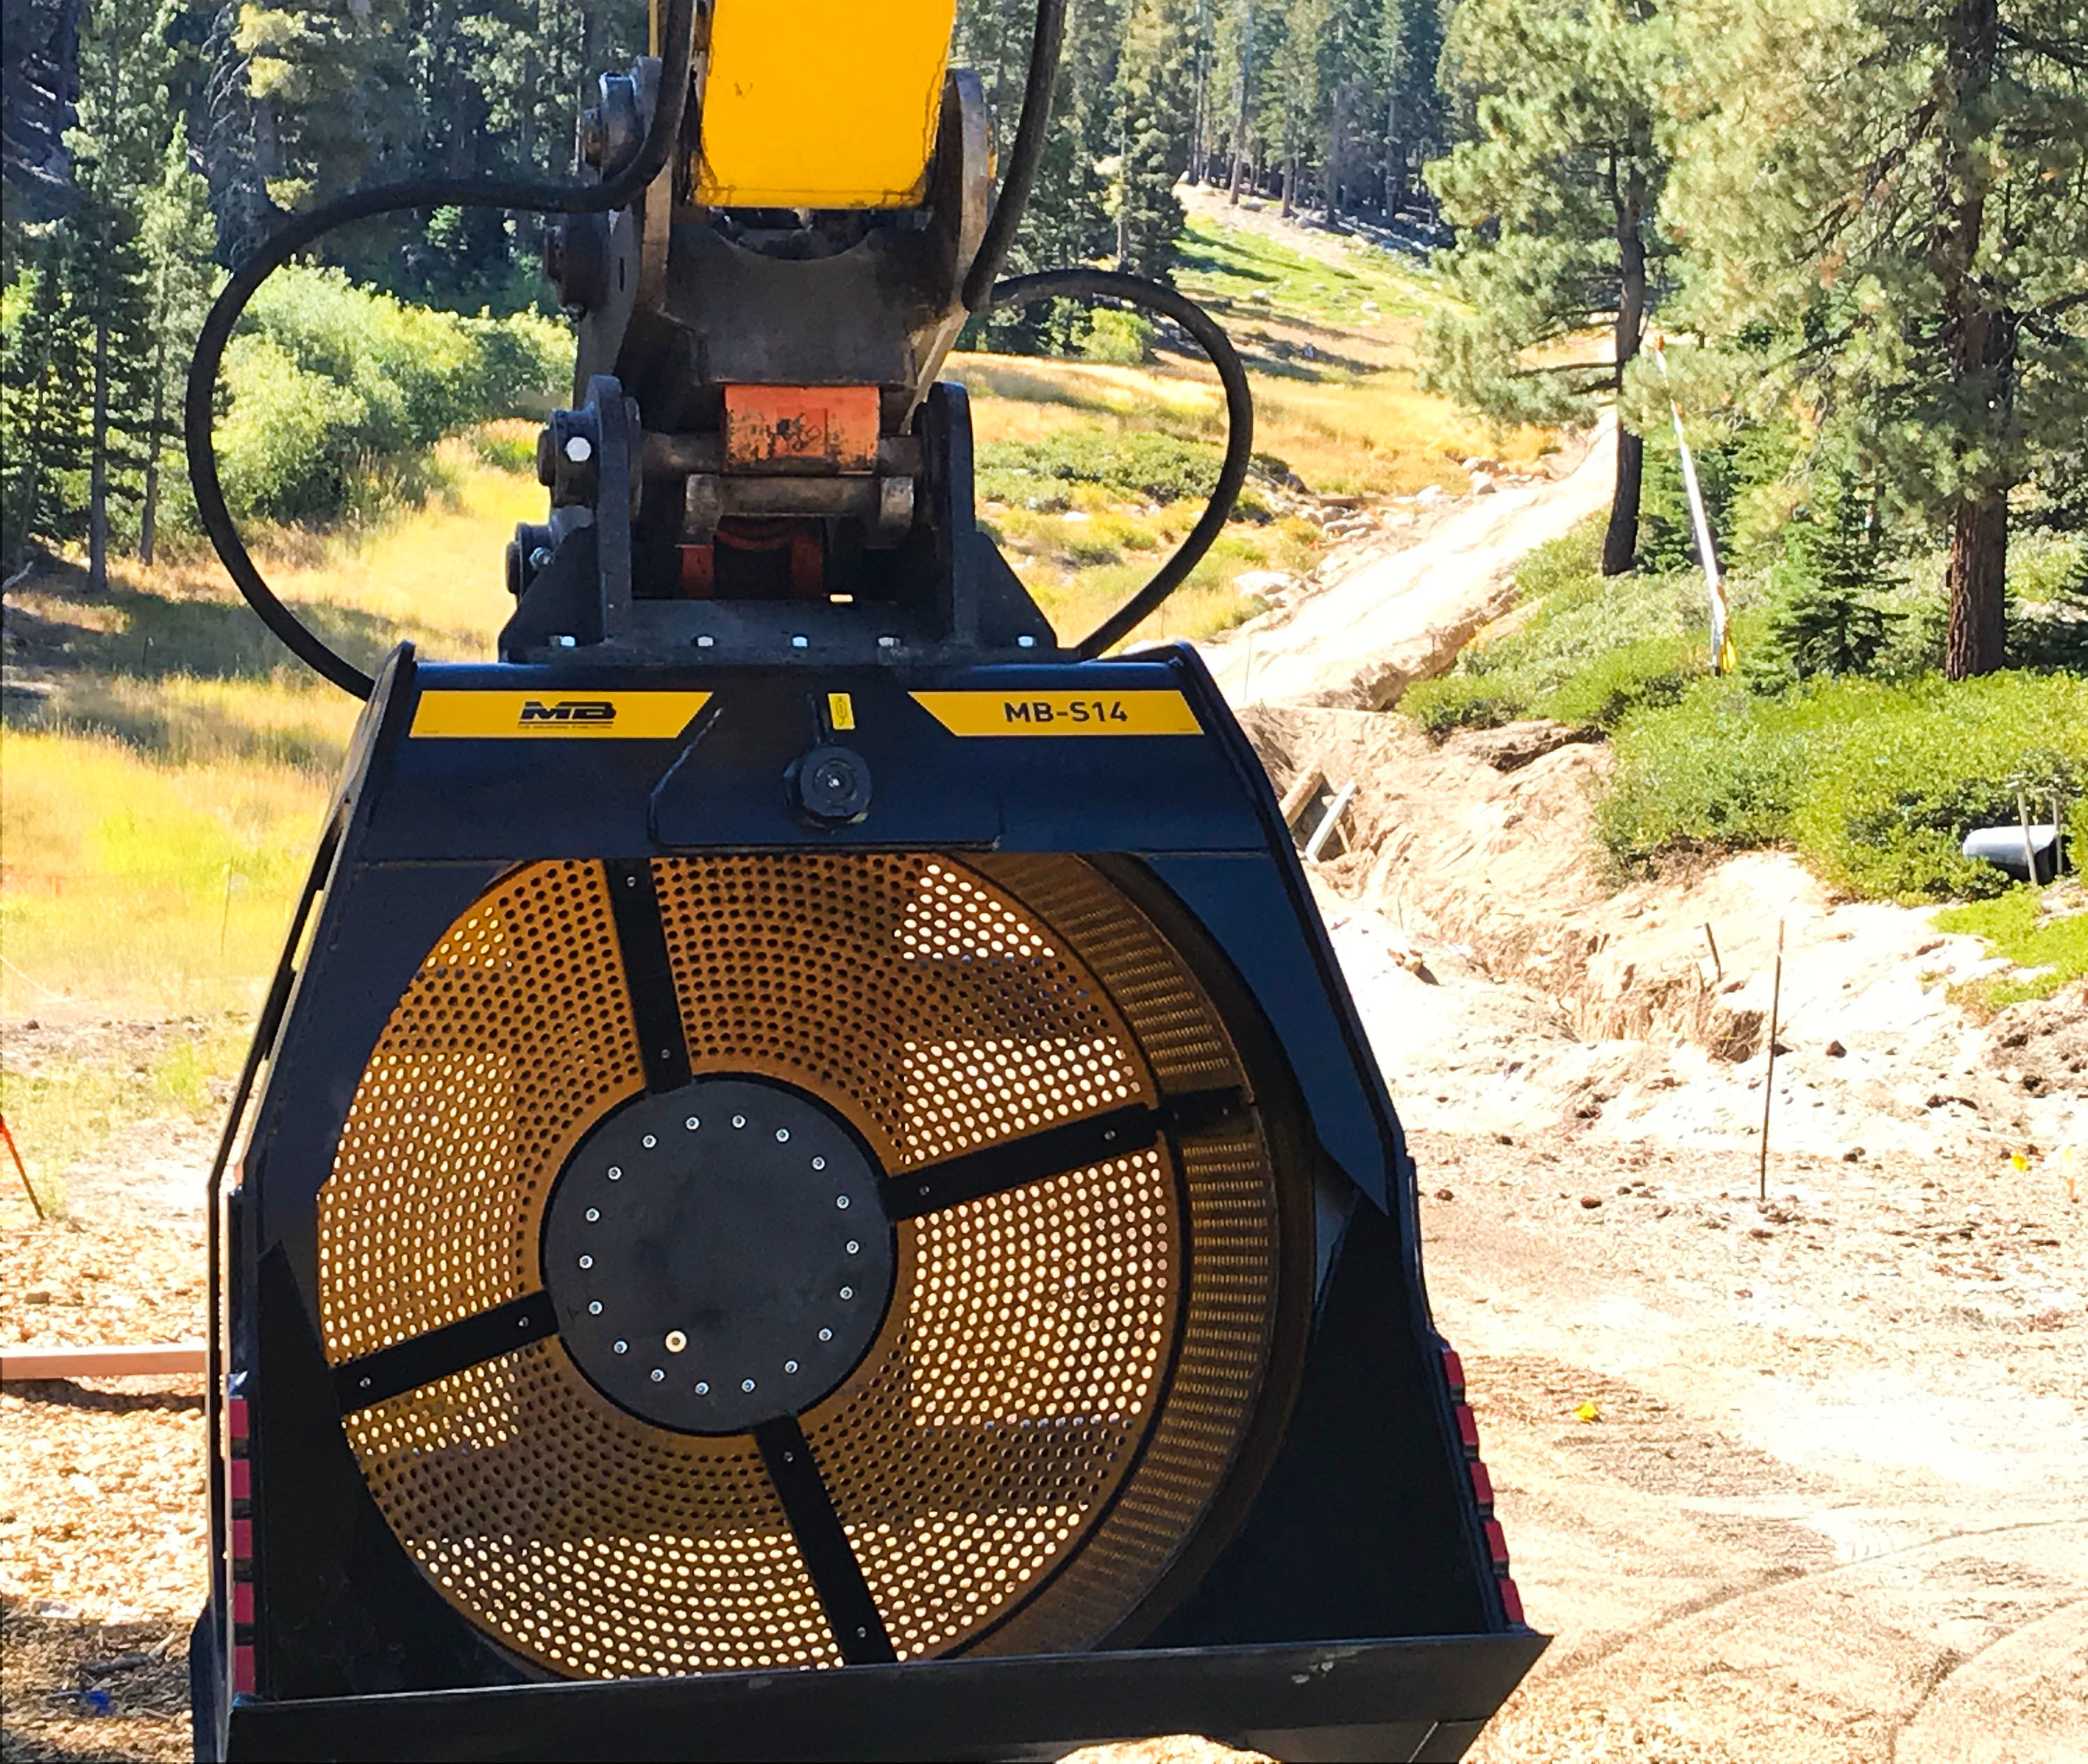 MB-S14 Screener bucket working on a ski resort in Heavenly Mountain